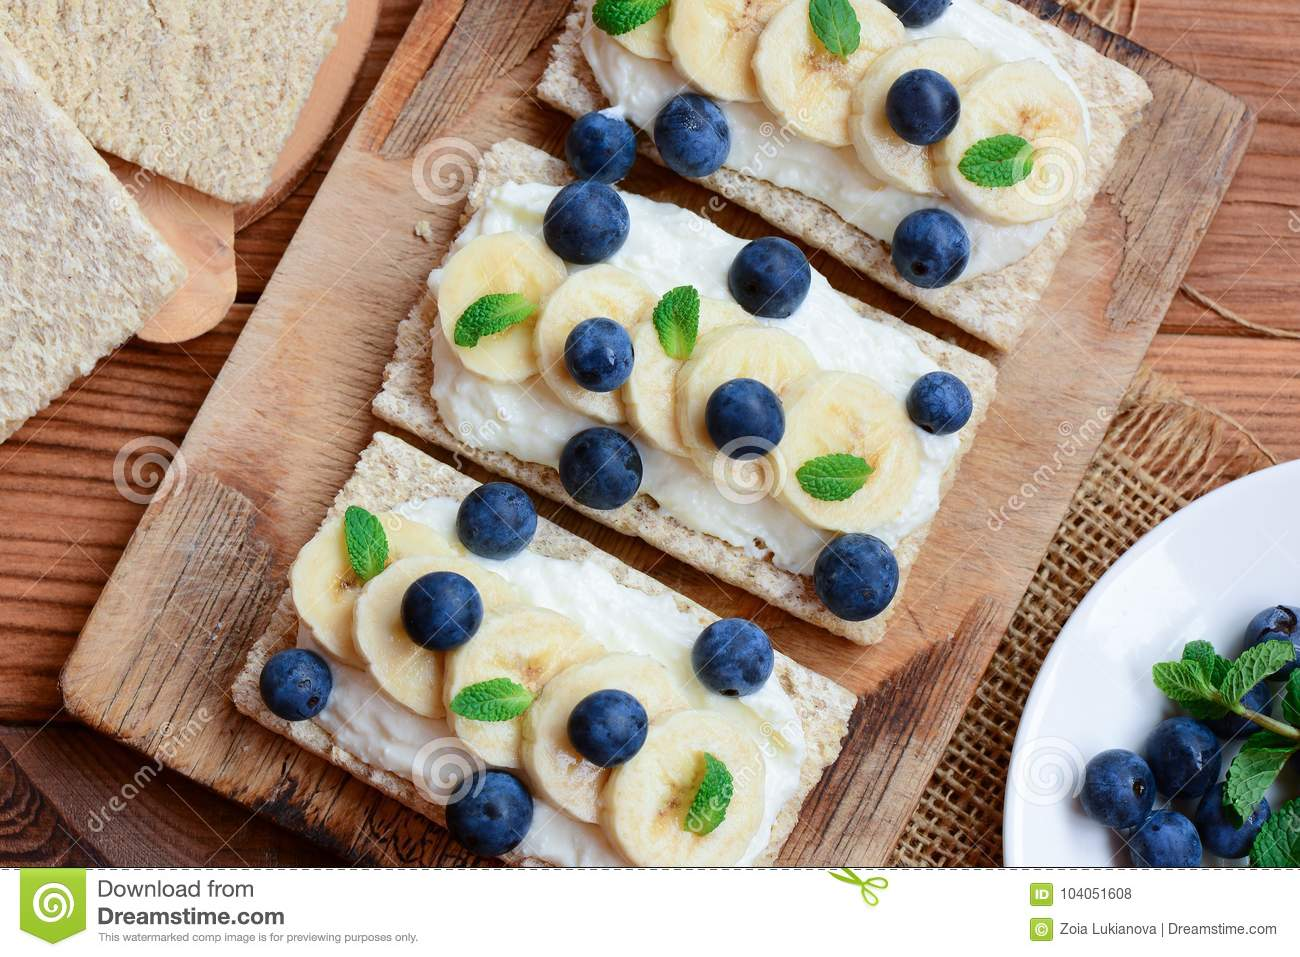 Cottage Cheese Bananas And Berries Sandwiches With Crisp Bread On Wooden Board Great Cottage Cheese Sandwiches Recipe Closeup Stock Photo Image Of Food Creamy 104051608